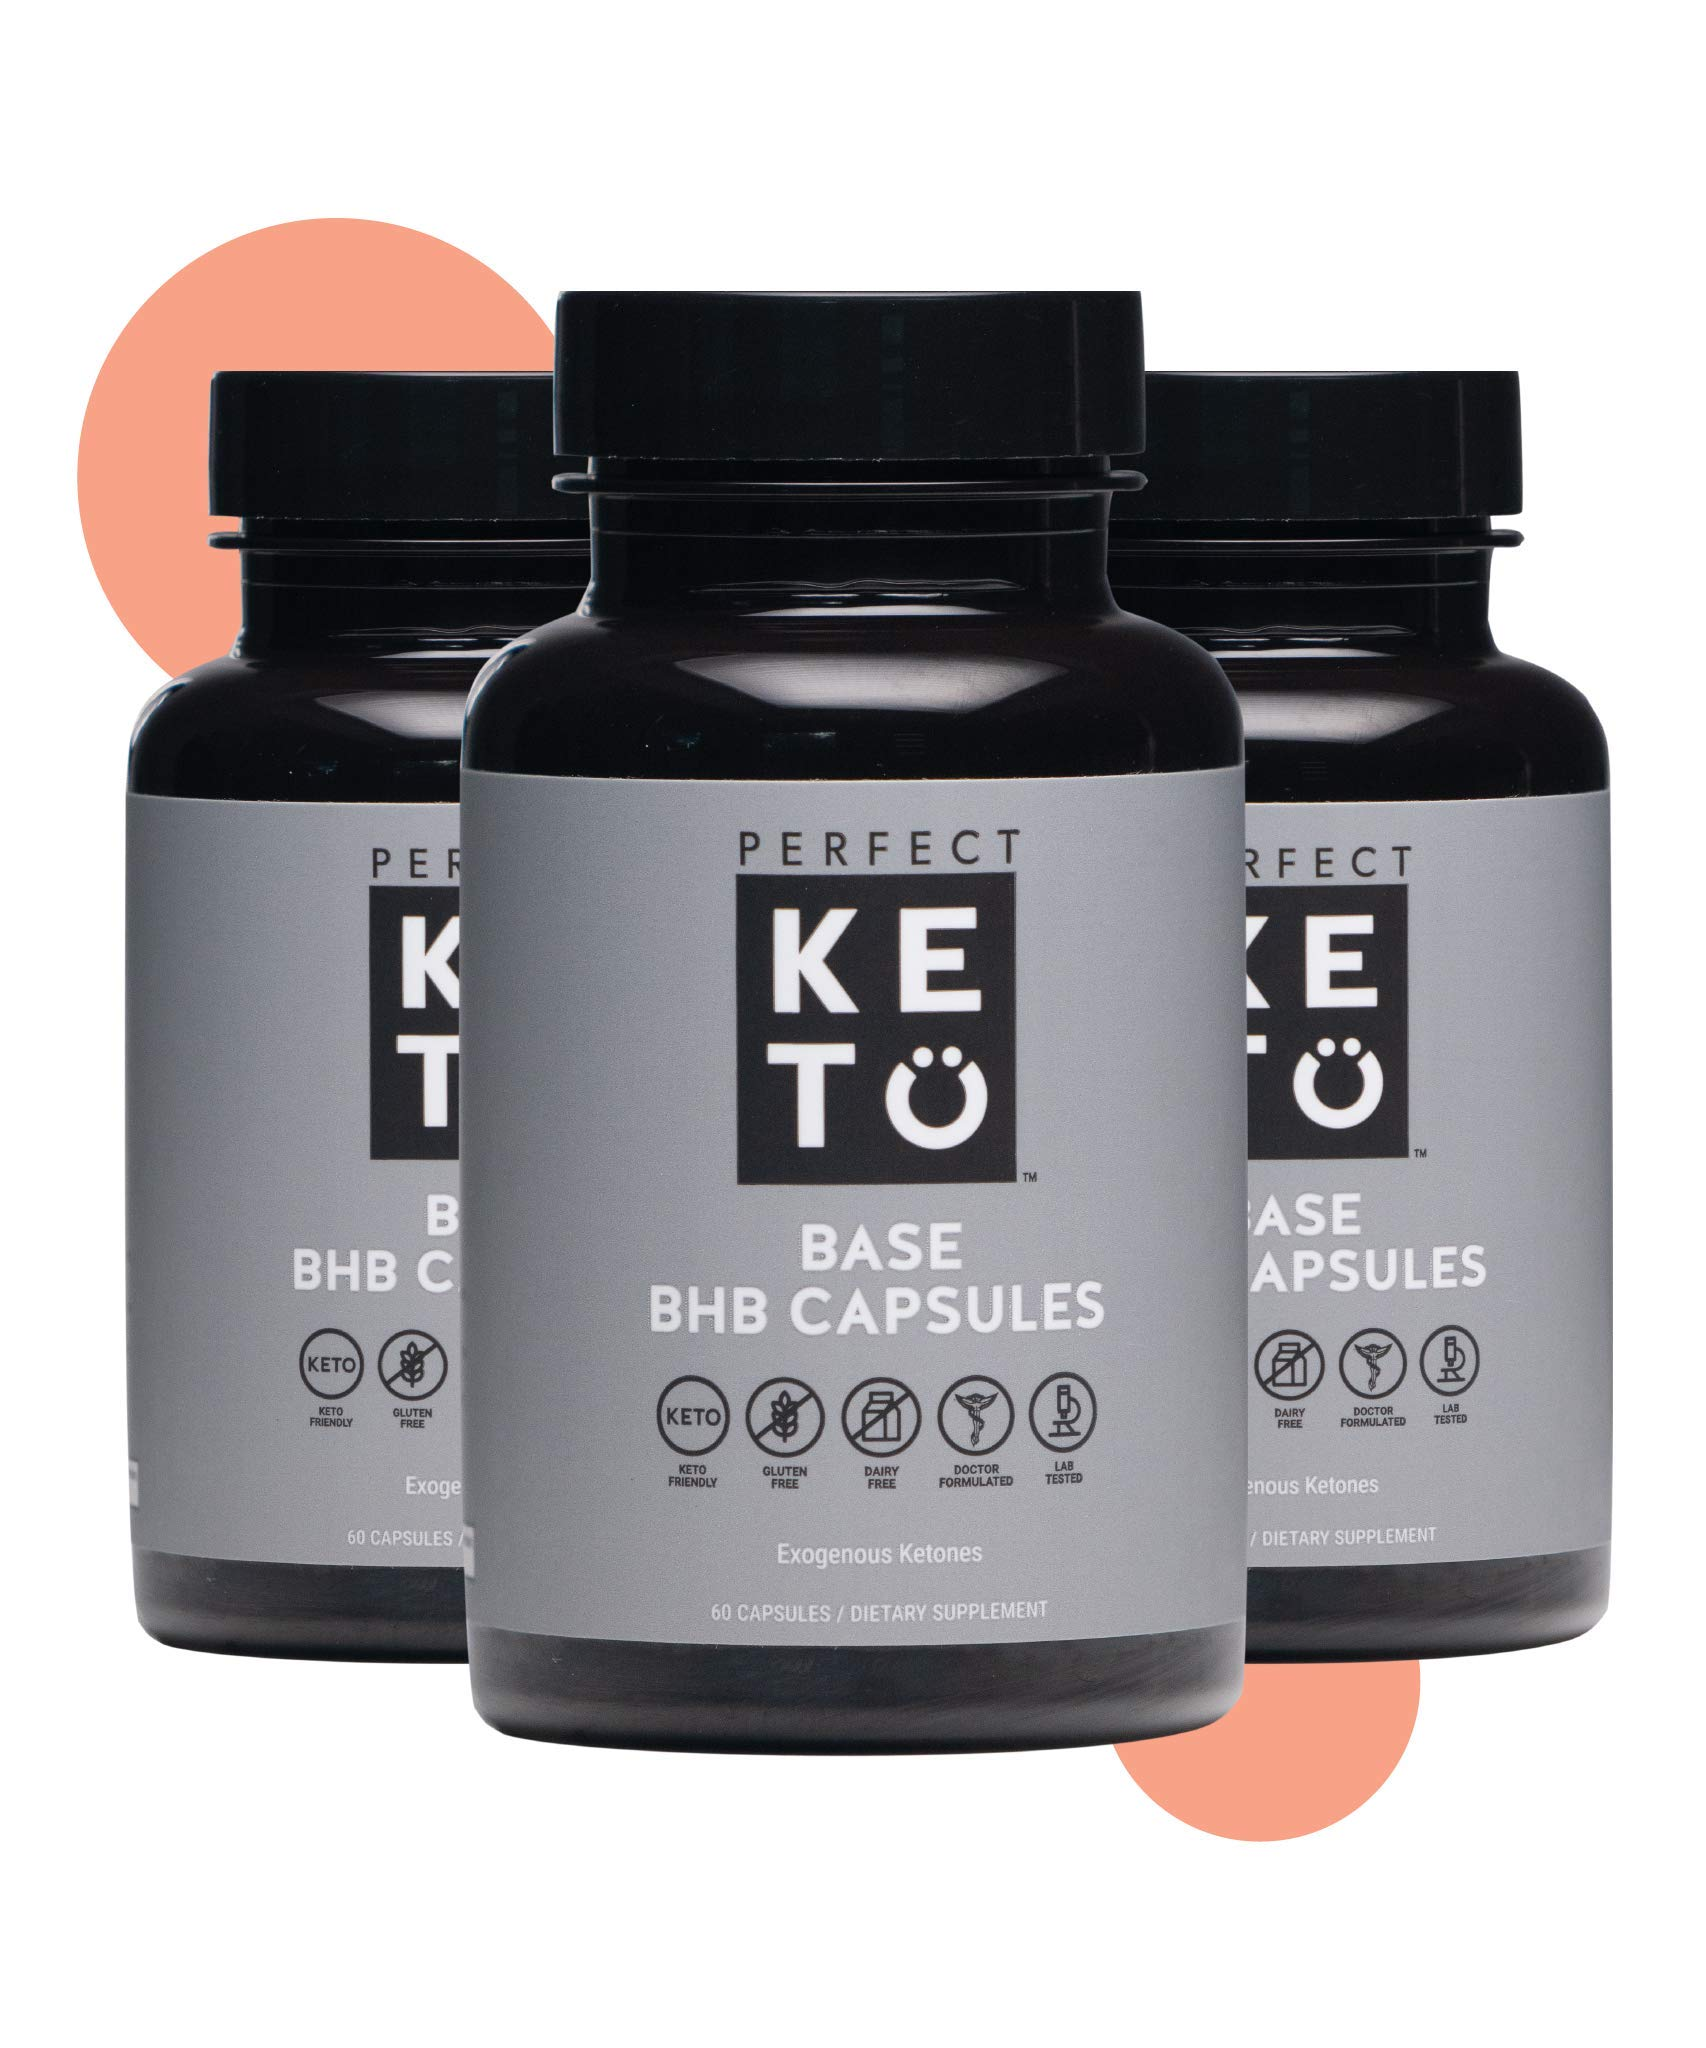 Perfect Keto BHB Exogenous Keto Capsules | Keto Pills for Ketogenic Diet Best to Support Weight Management & Energy, Focus and Ketosis Beta-Hydroxybutyrate BHB Salt Pills, 60 Count (Pack of 1) by Perfect Keto